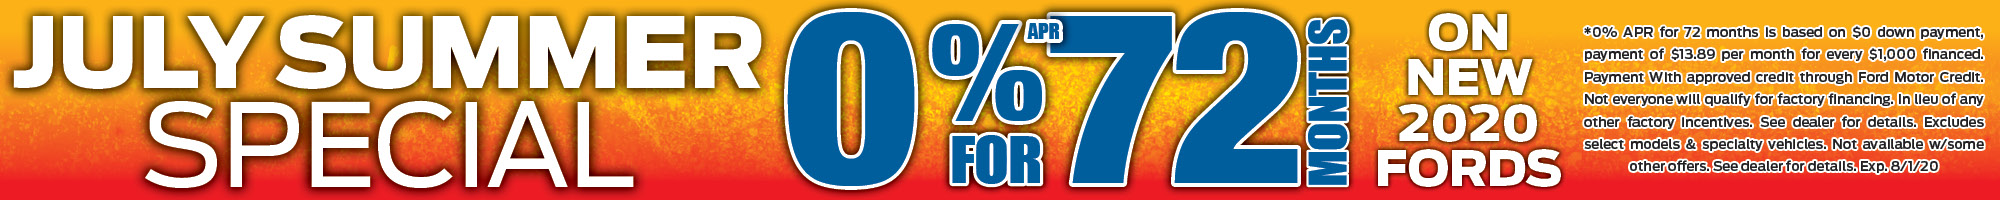 0%apr for 72 months financing special